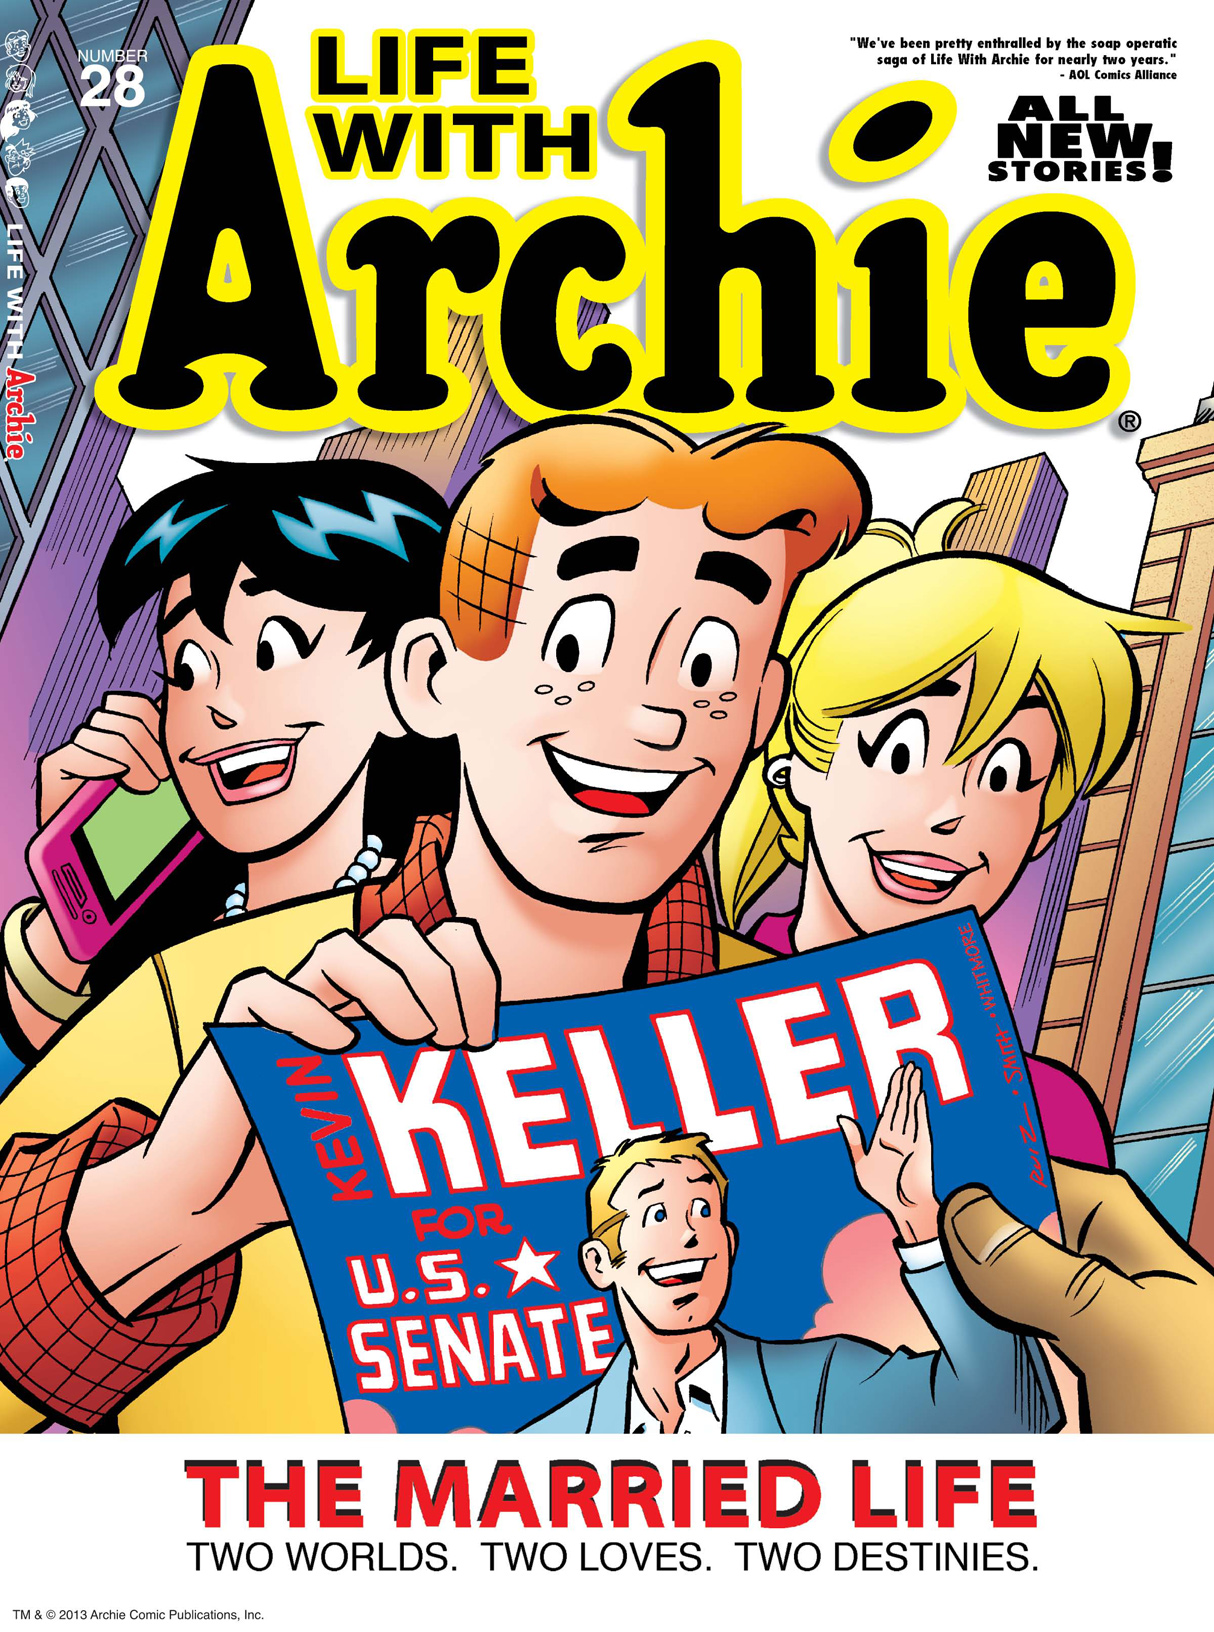 Life With Archie Magazine #28